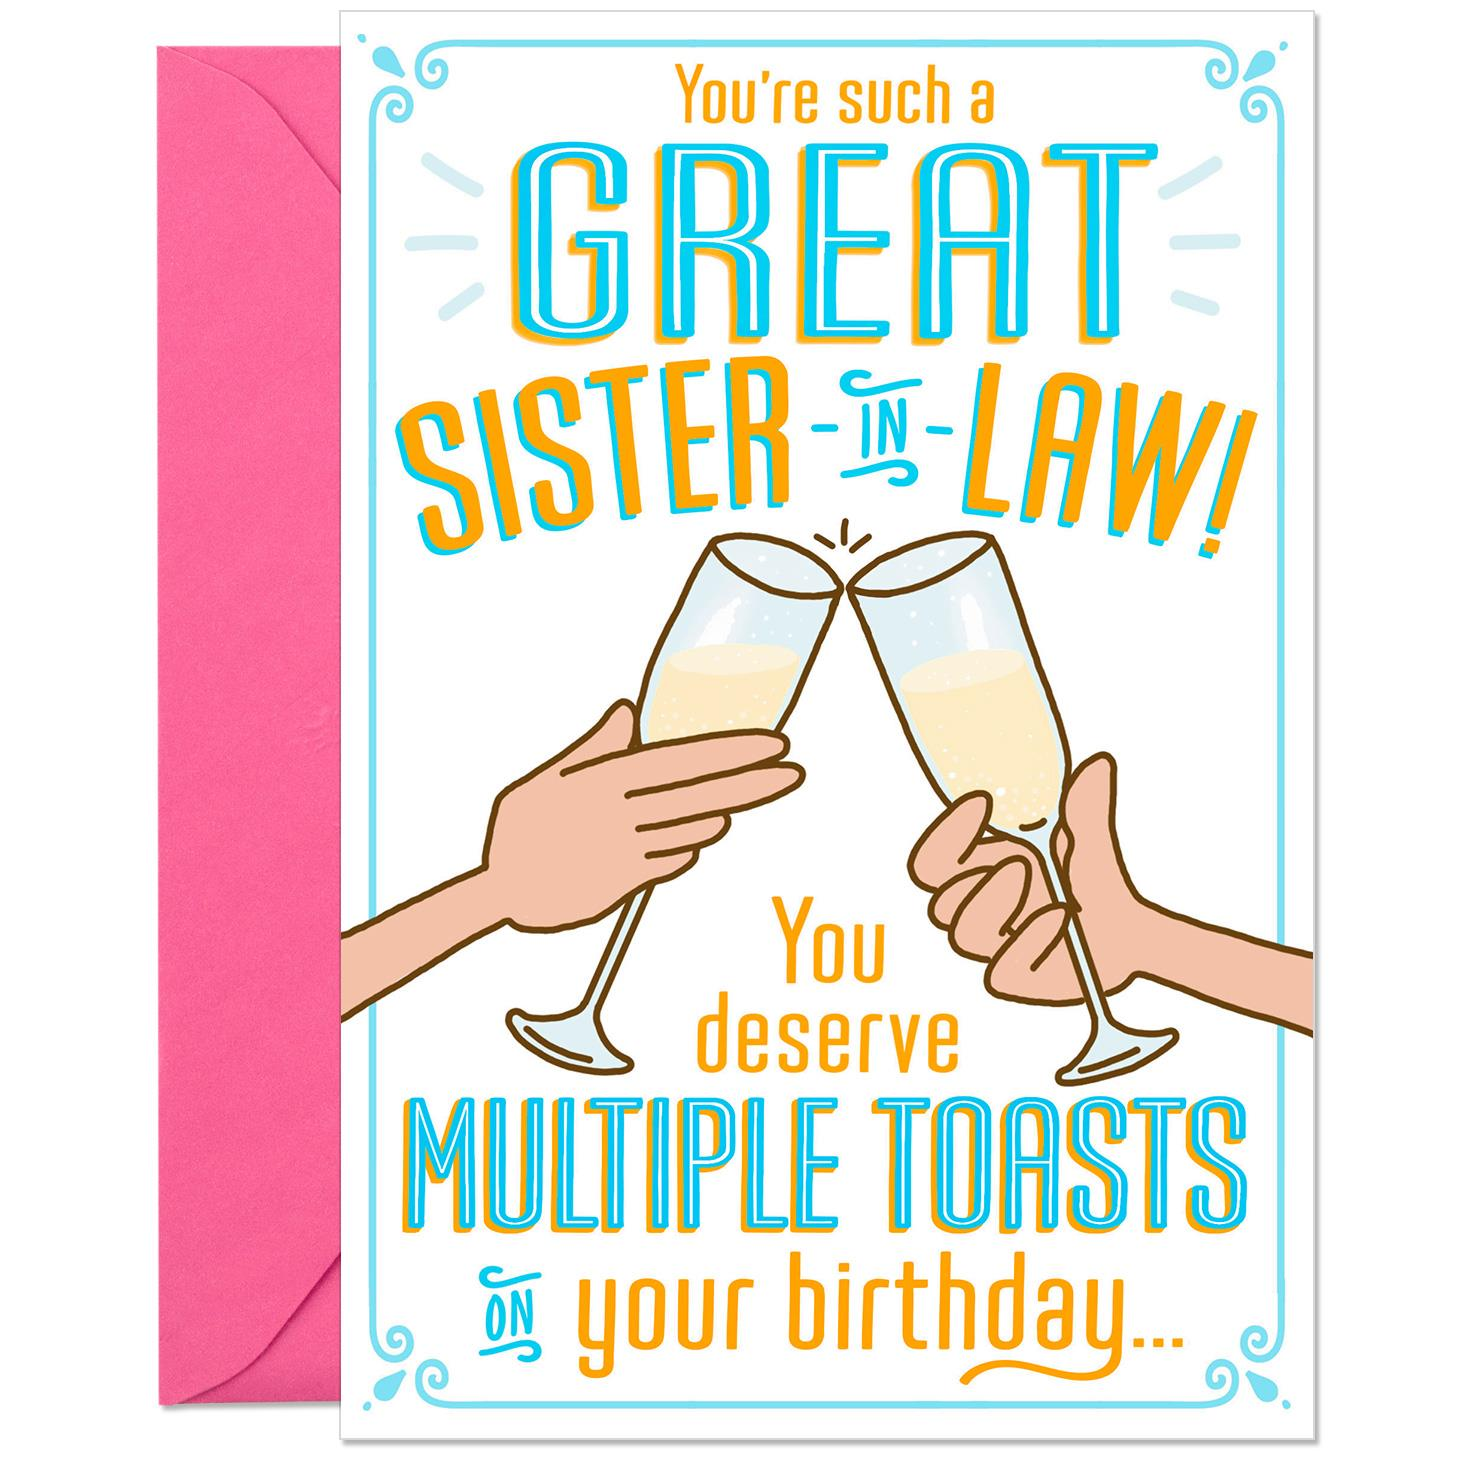 Multiple Toasts Funny Pop Up Birthday Card For Sister In Law